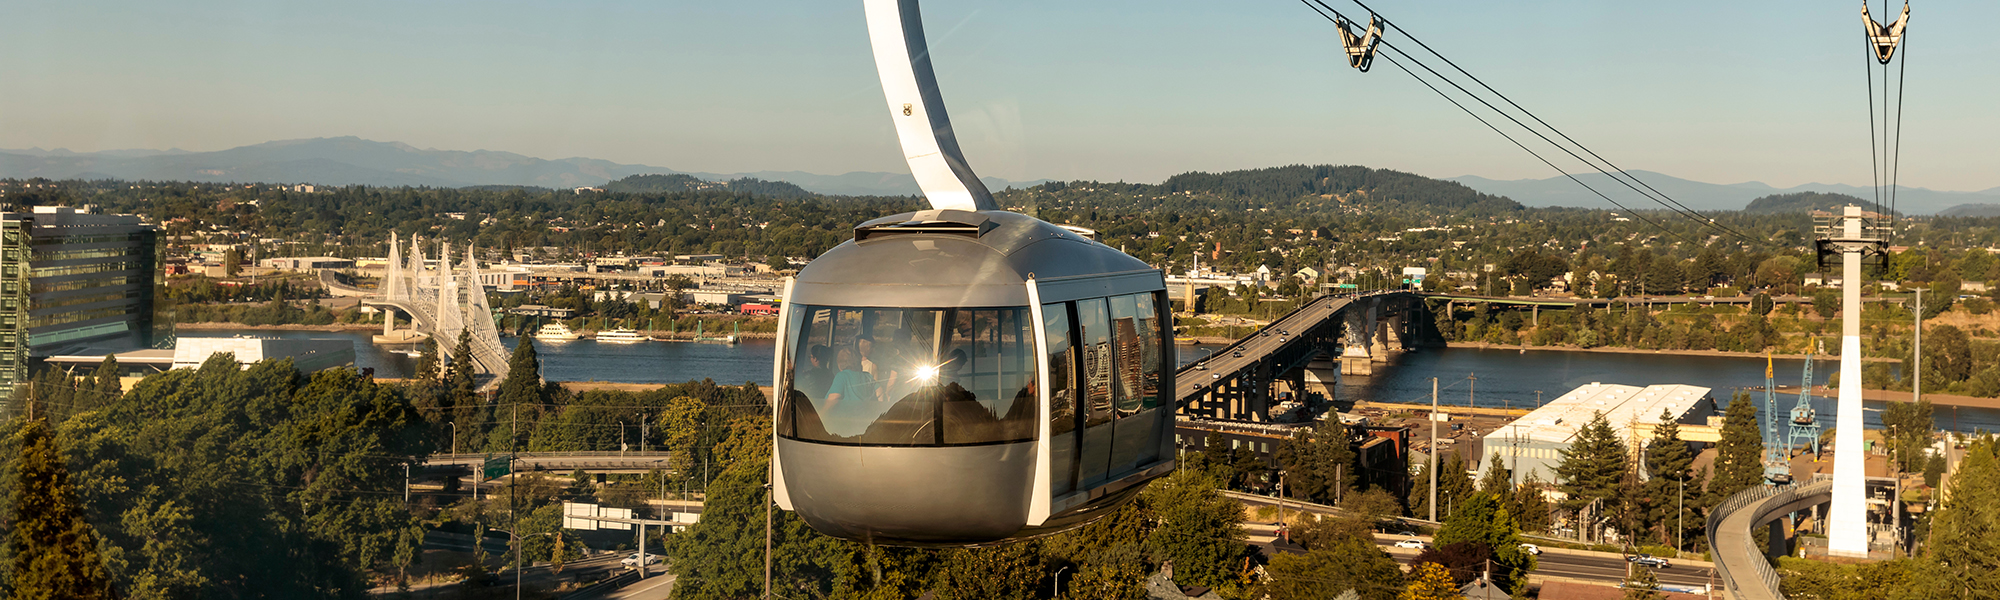 aerial view of the OHSU tram over the Portland skyline